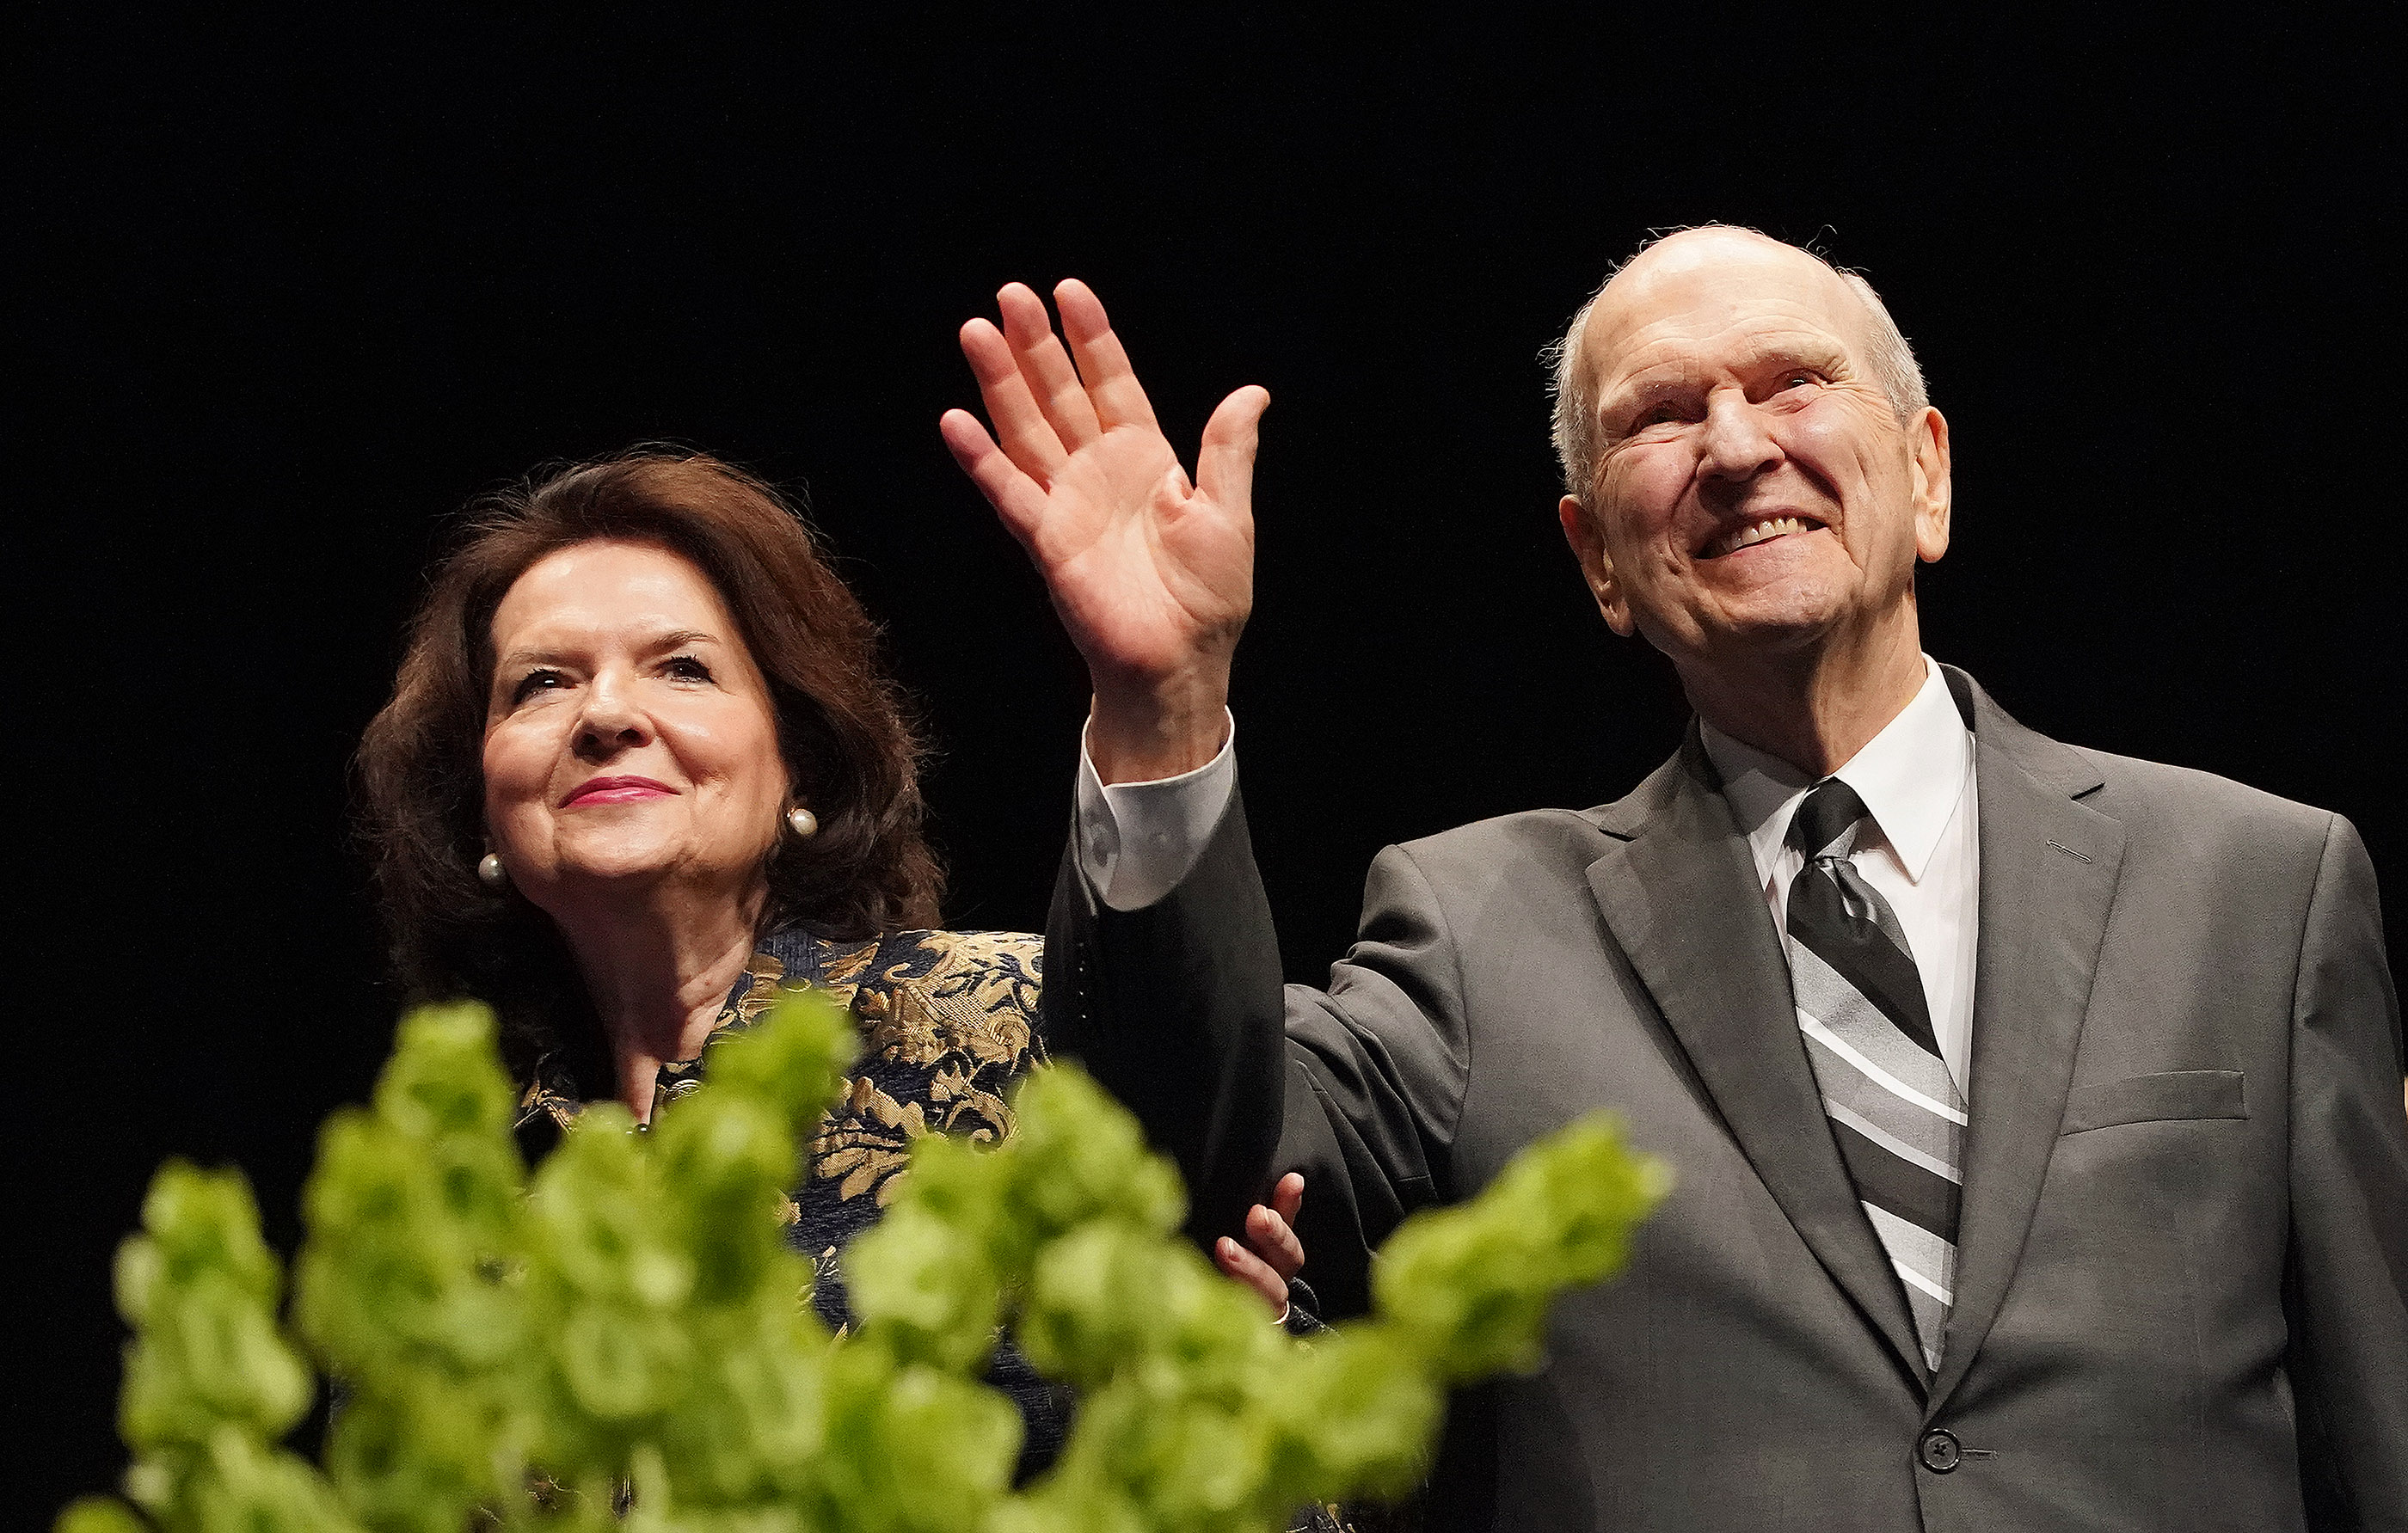 President Russell M. Nelson of The Church of Jesus Christ of Latter-day Saints and his wife, Sister Wendy Nelson, wave to devotional attendees on May 19, 2019, in Sydney, Australia.